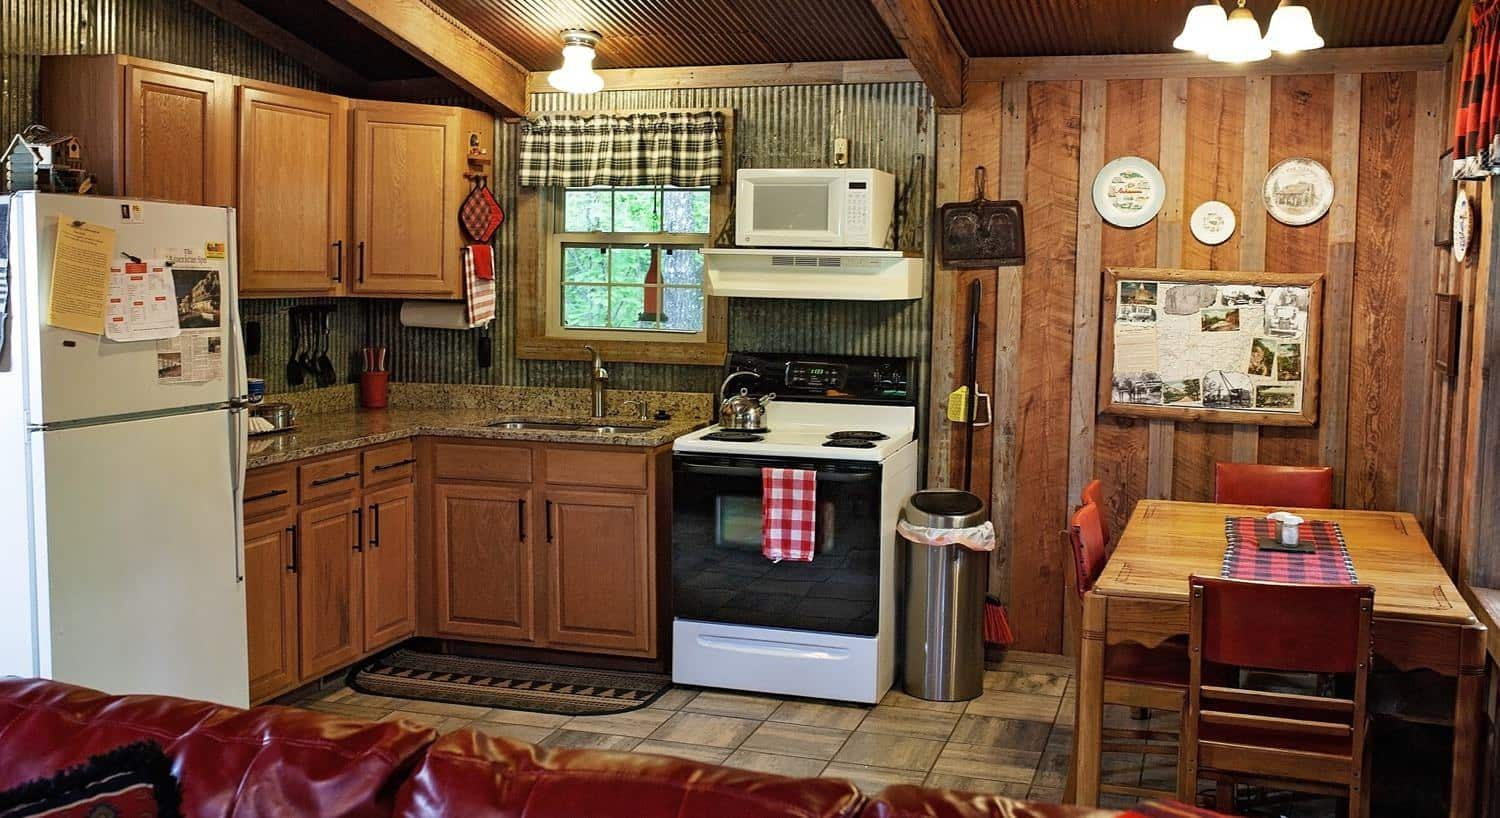 L-shaped kitchen in one of the cabins with window, refrigerator, range, countertop, and dining table for two